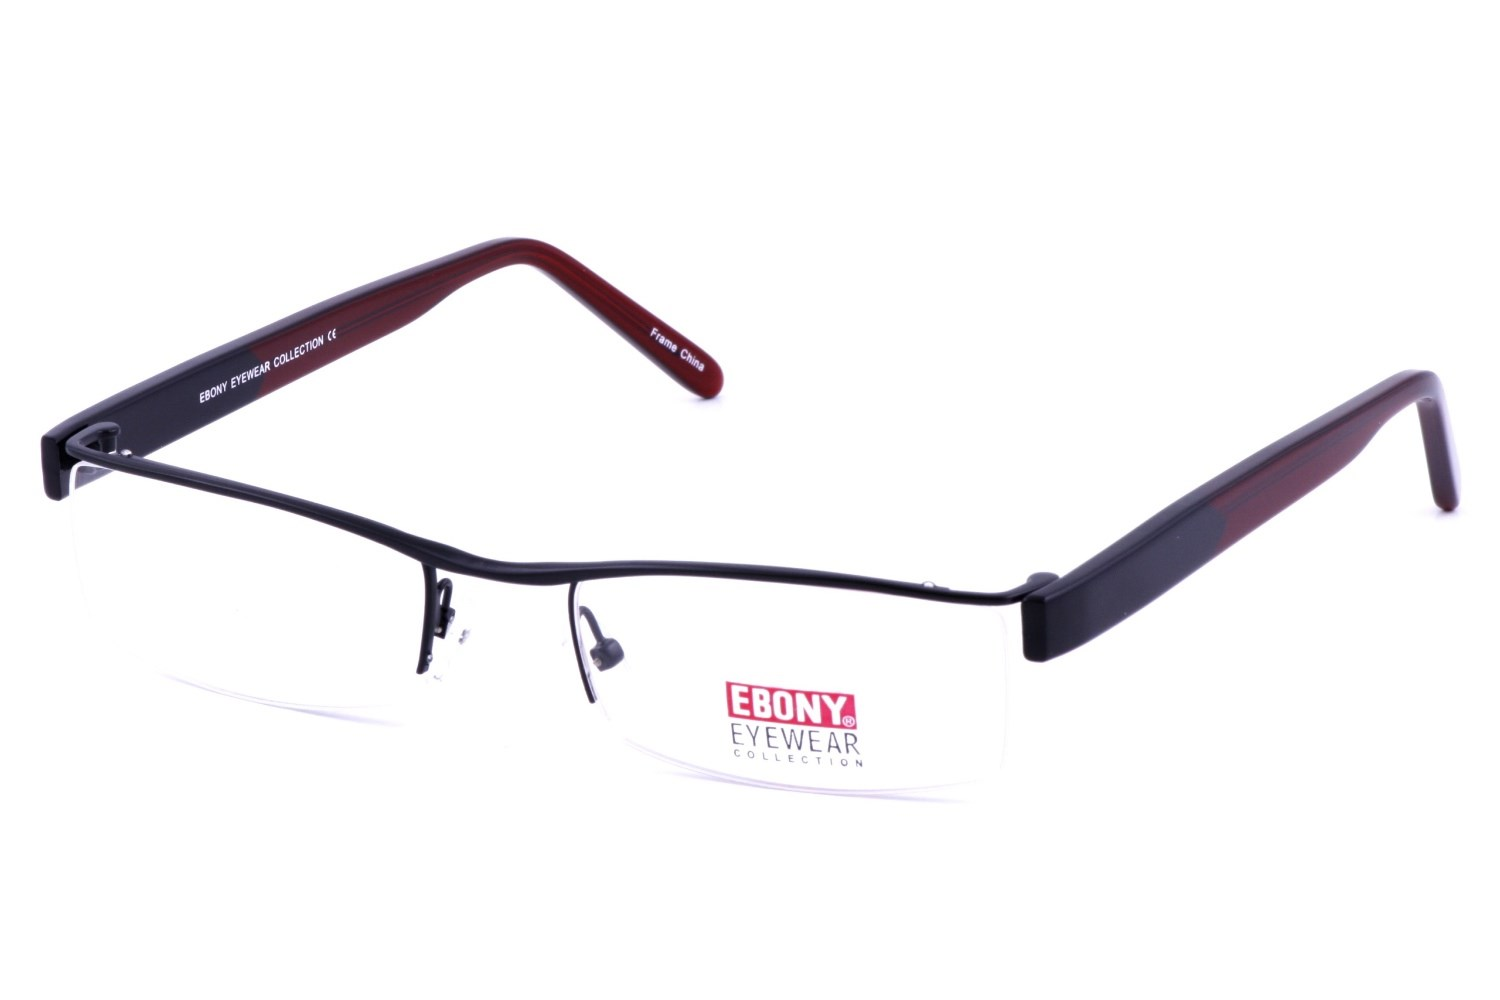 Ebony 10 Prescription Eyeglasses Frames